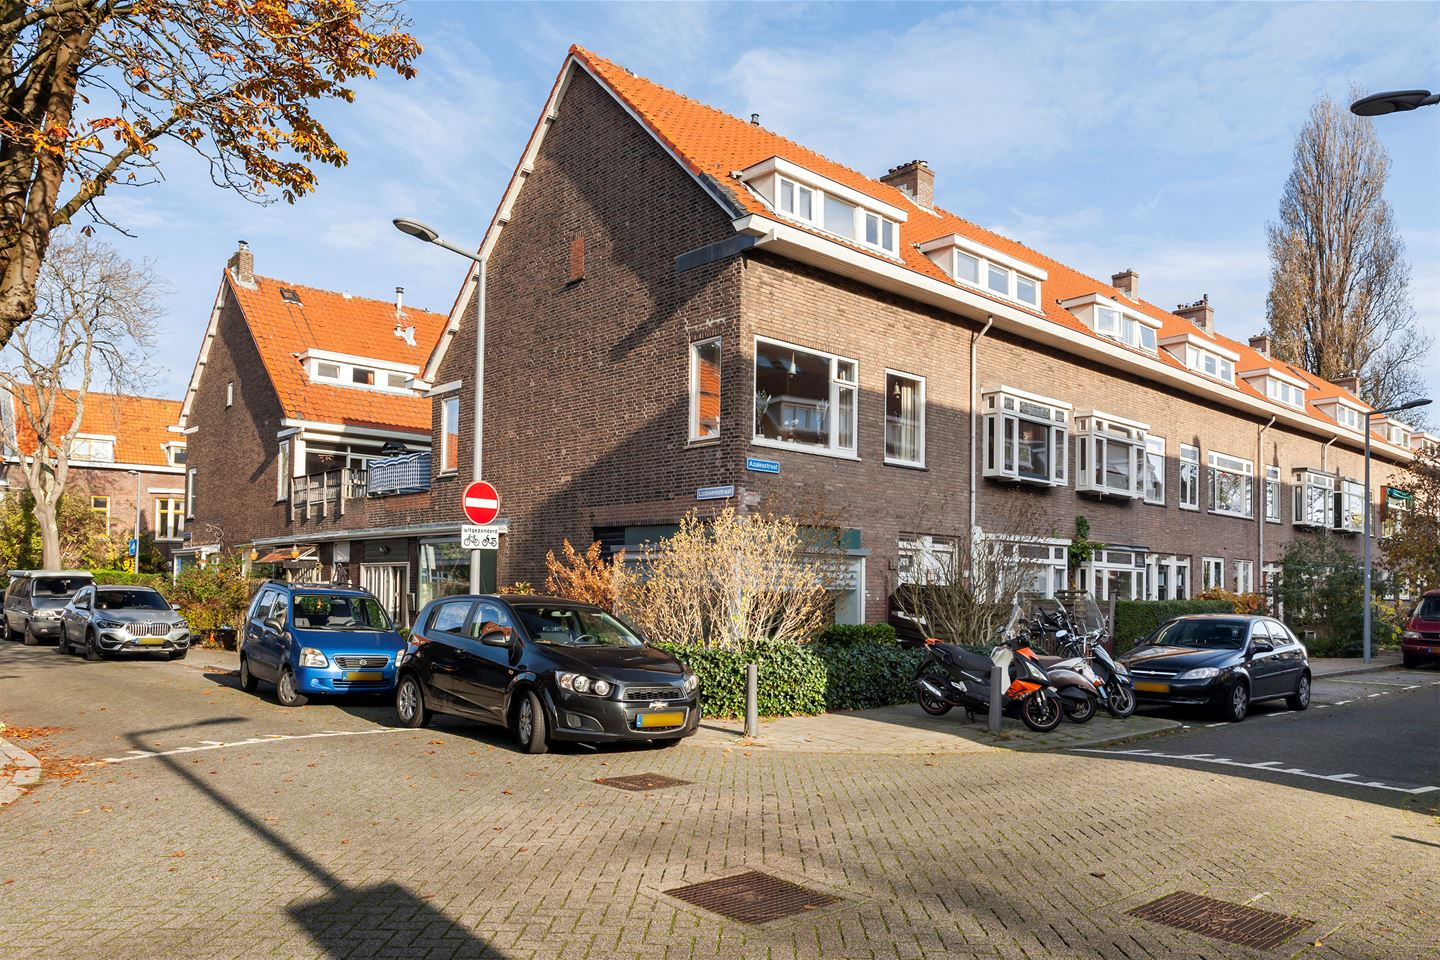 View photo 1 of Lisbloemstraat 47 a